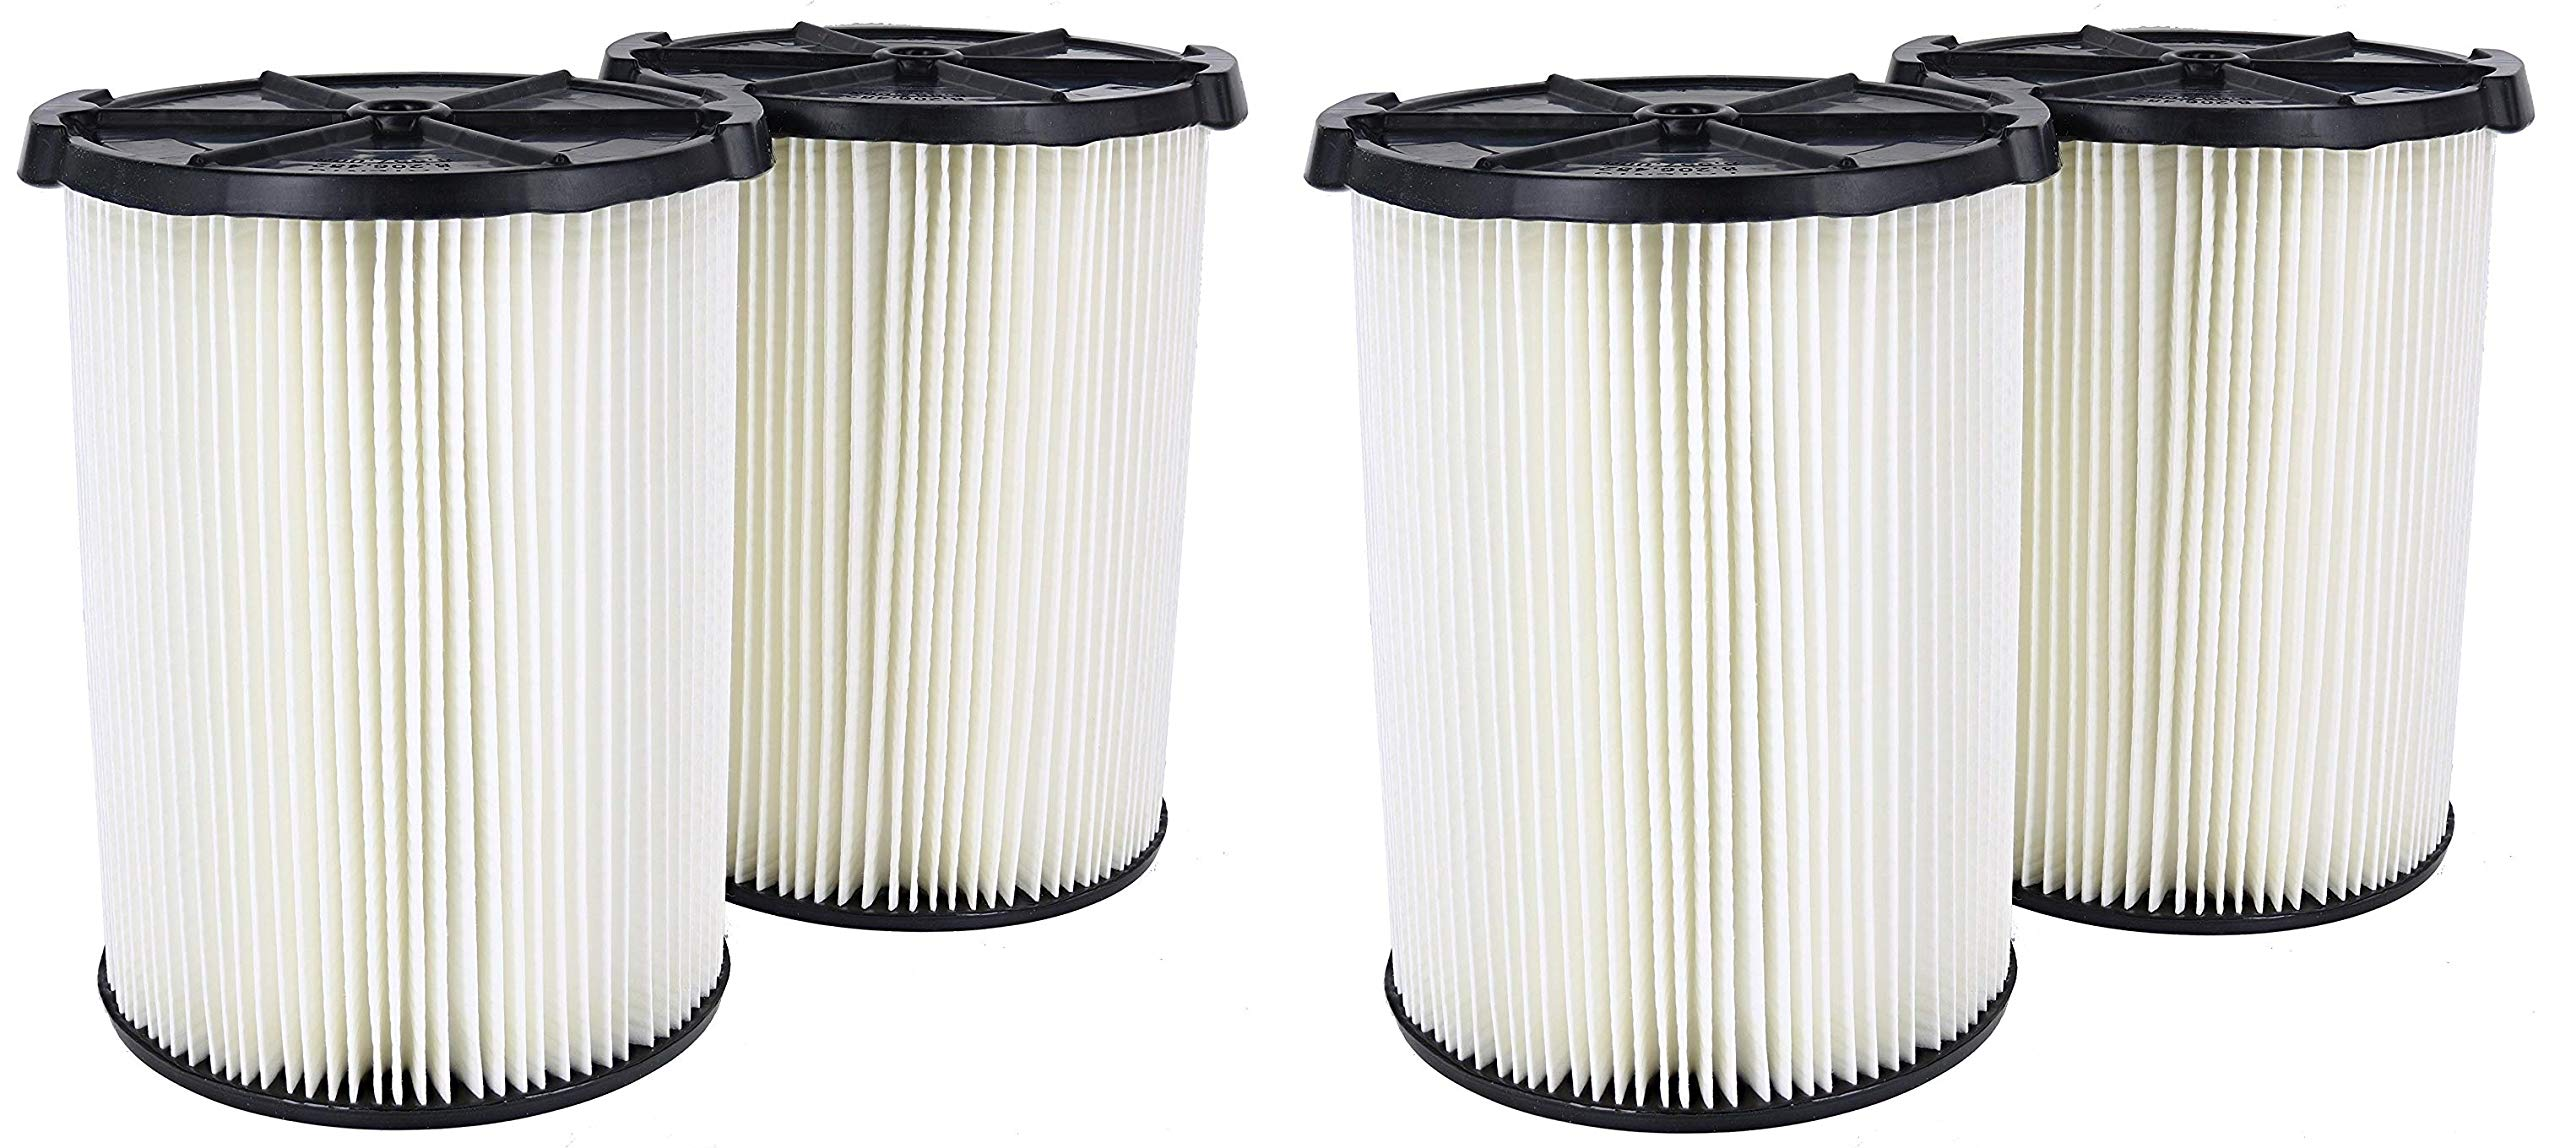 Ridgid VF4200 Genuine Replacement 1-Layer Everyday Dirt Wet/Dry Vac Filter for Ridgid 5-20 Gallon Vacuums (2 X Pack of 2)